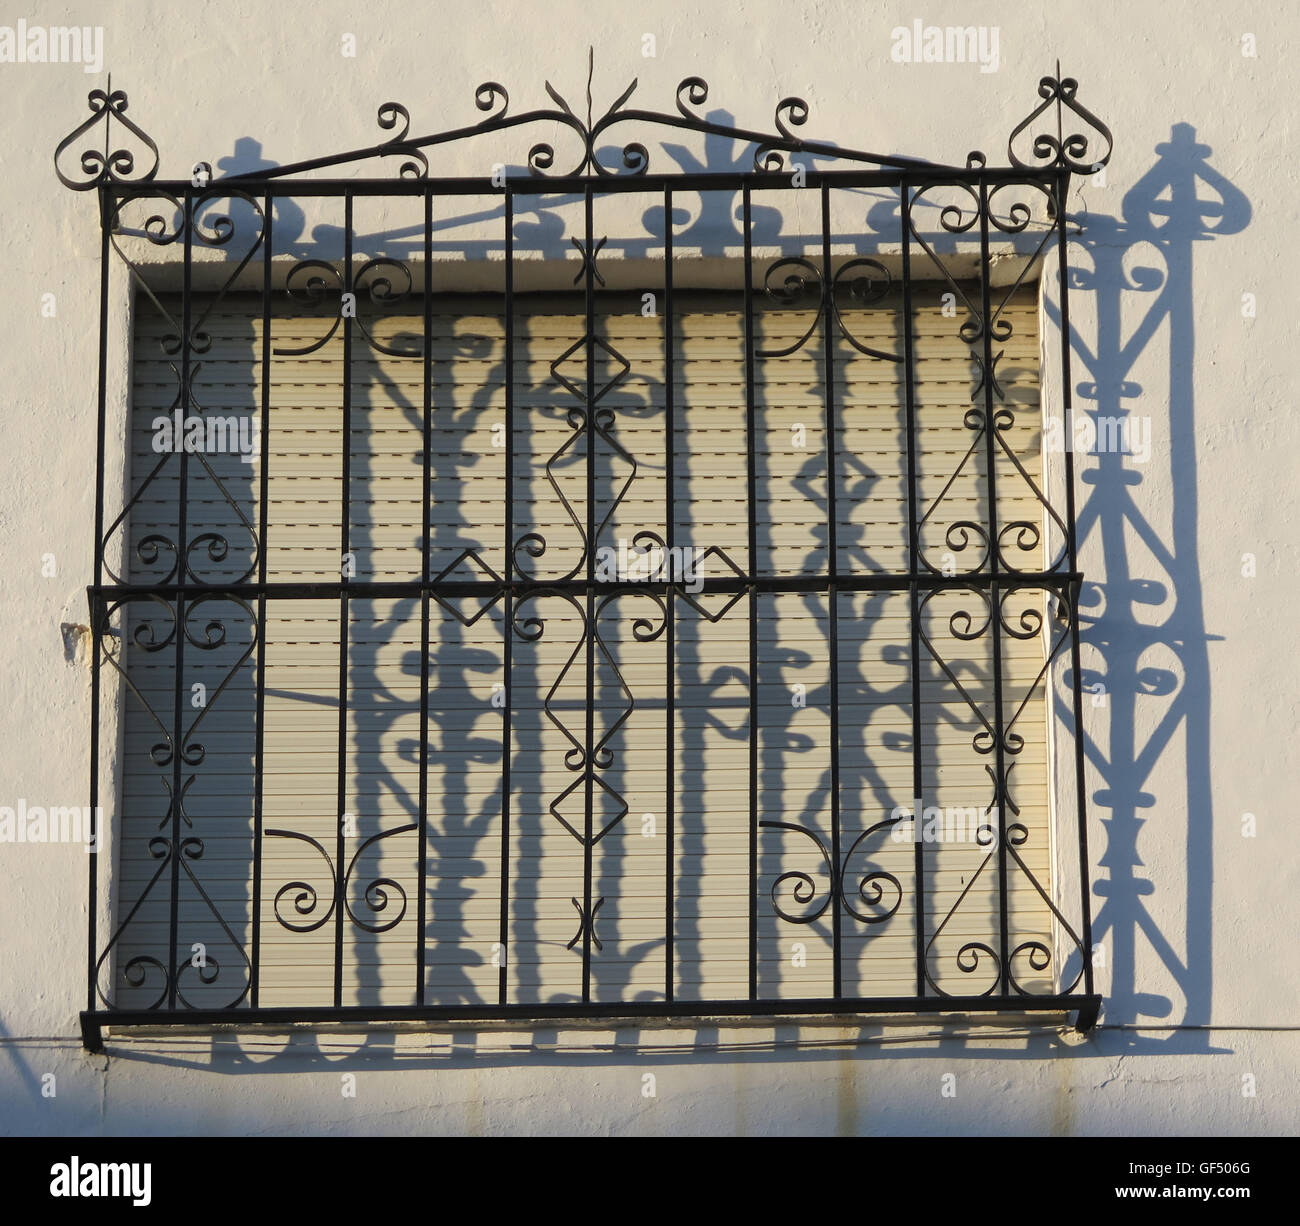 Decorative Security Grilles For Windows Decorative Window Security Grill In Stock Photos Decorative